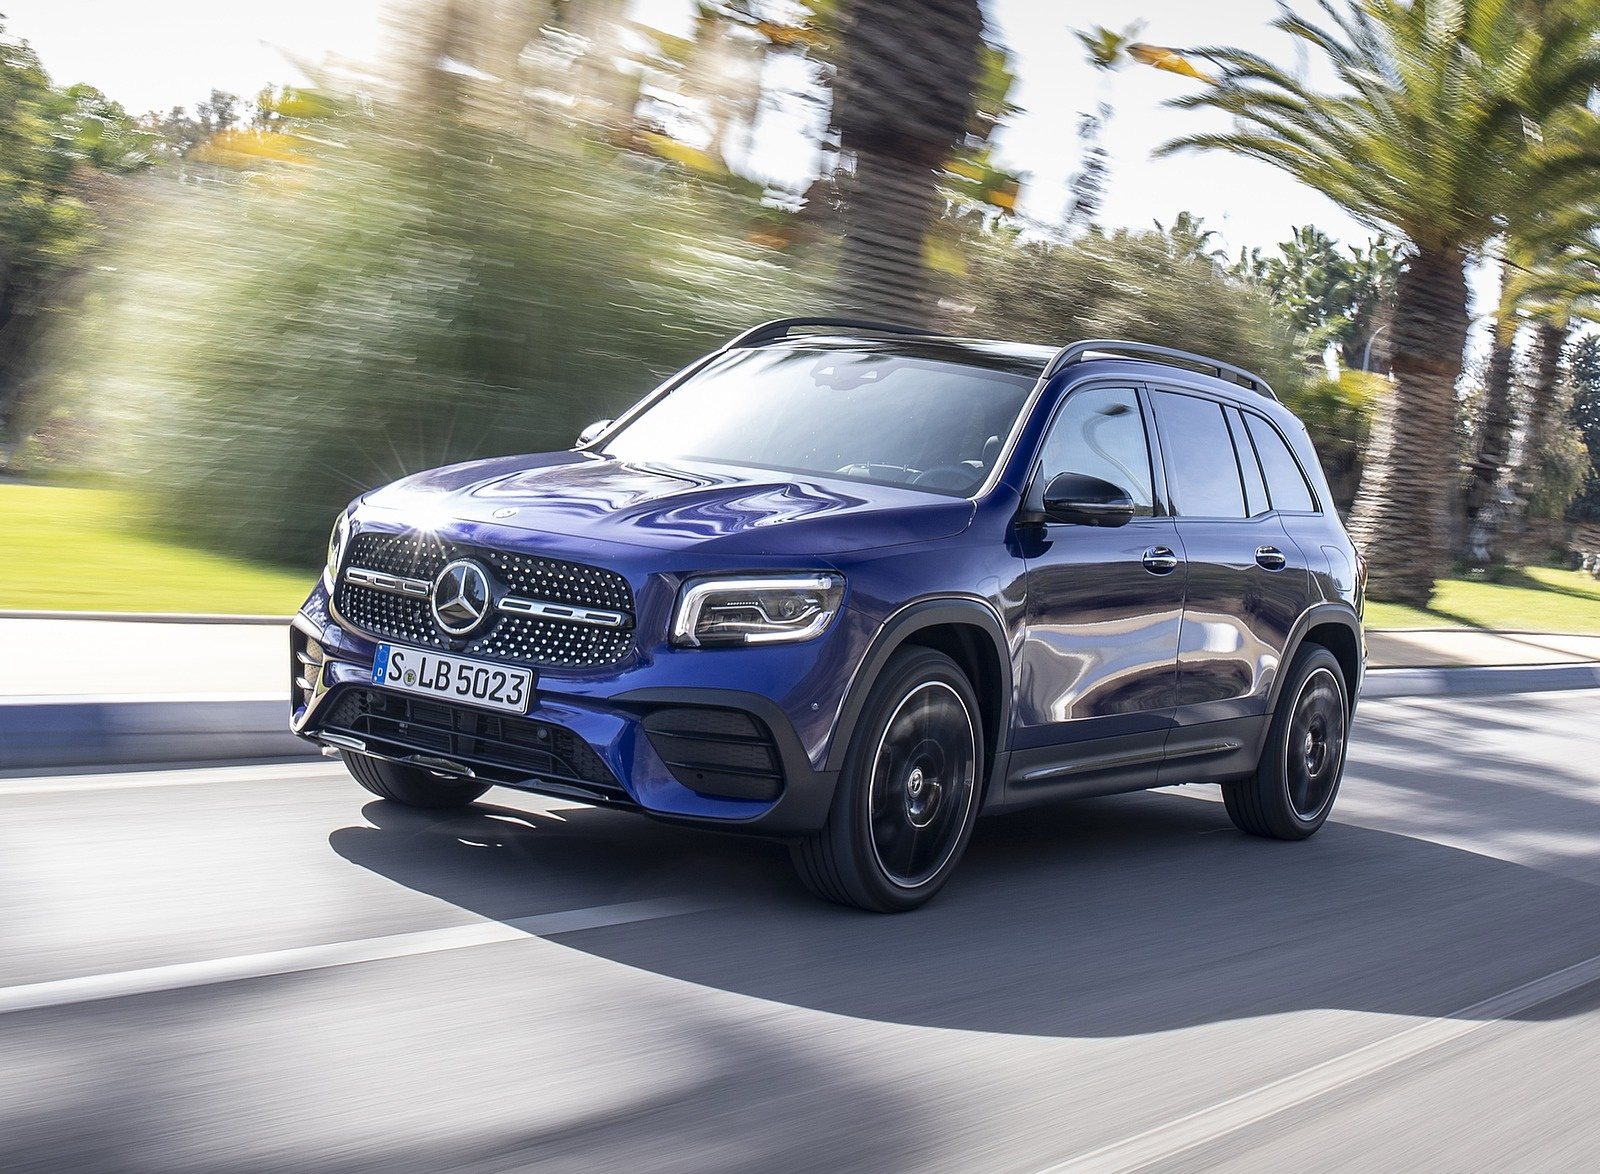 2020 Mercedes-Benz GLB 220 d 4MATIC (Color: Galaxy Blue Metallic) Front Three-Quarter Wallpapers (2)